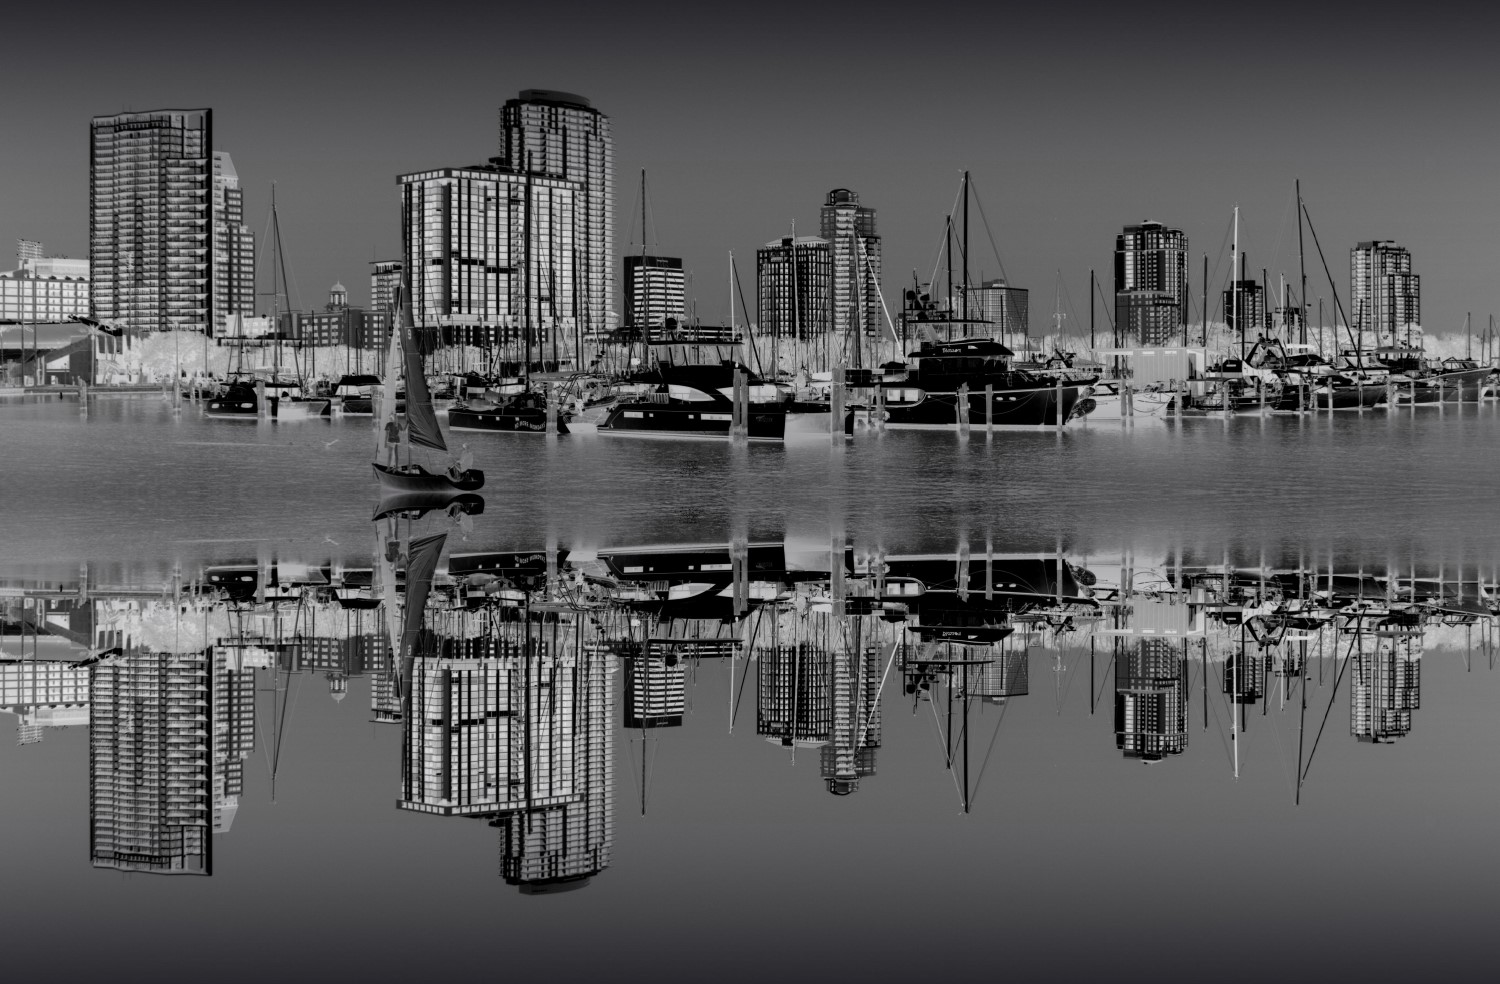 Downtown Reflection #4